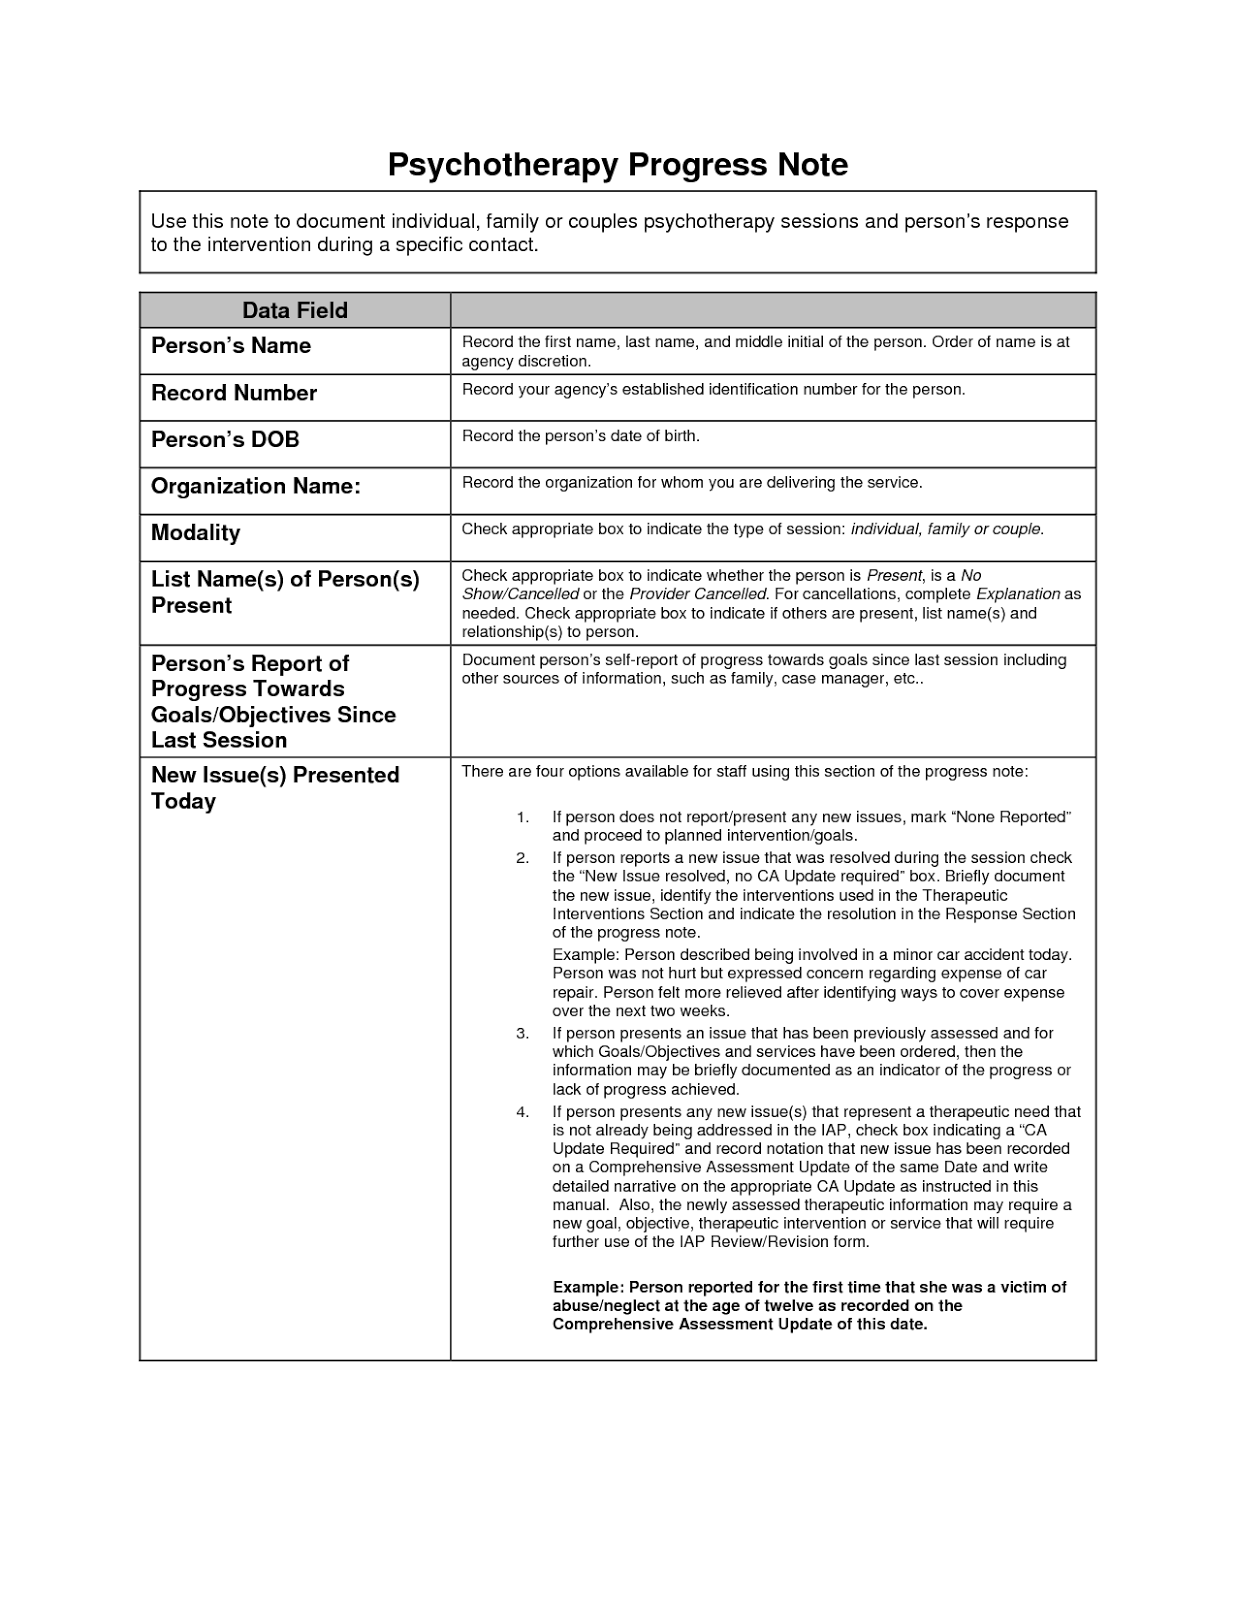 Psychotherapy Progress Note Template is used by